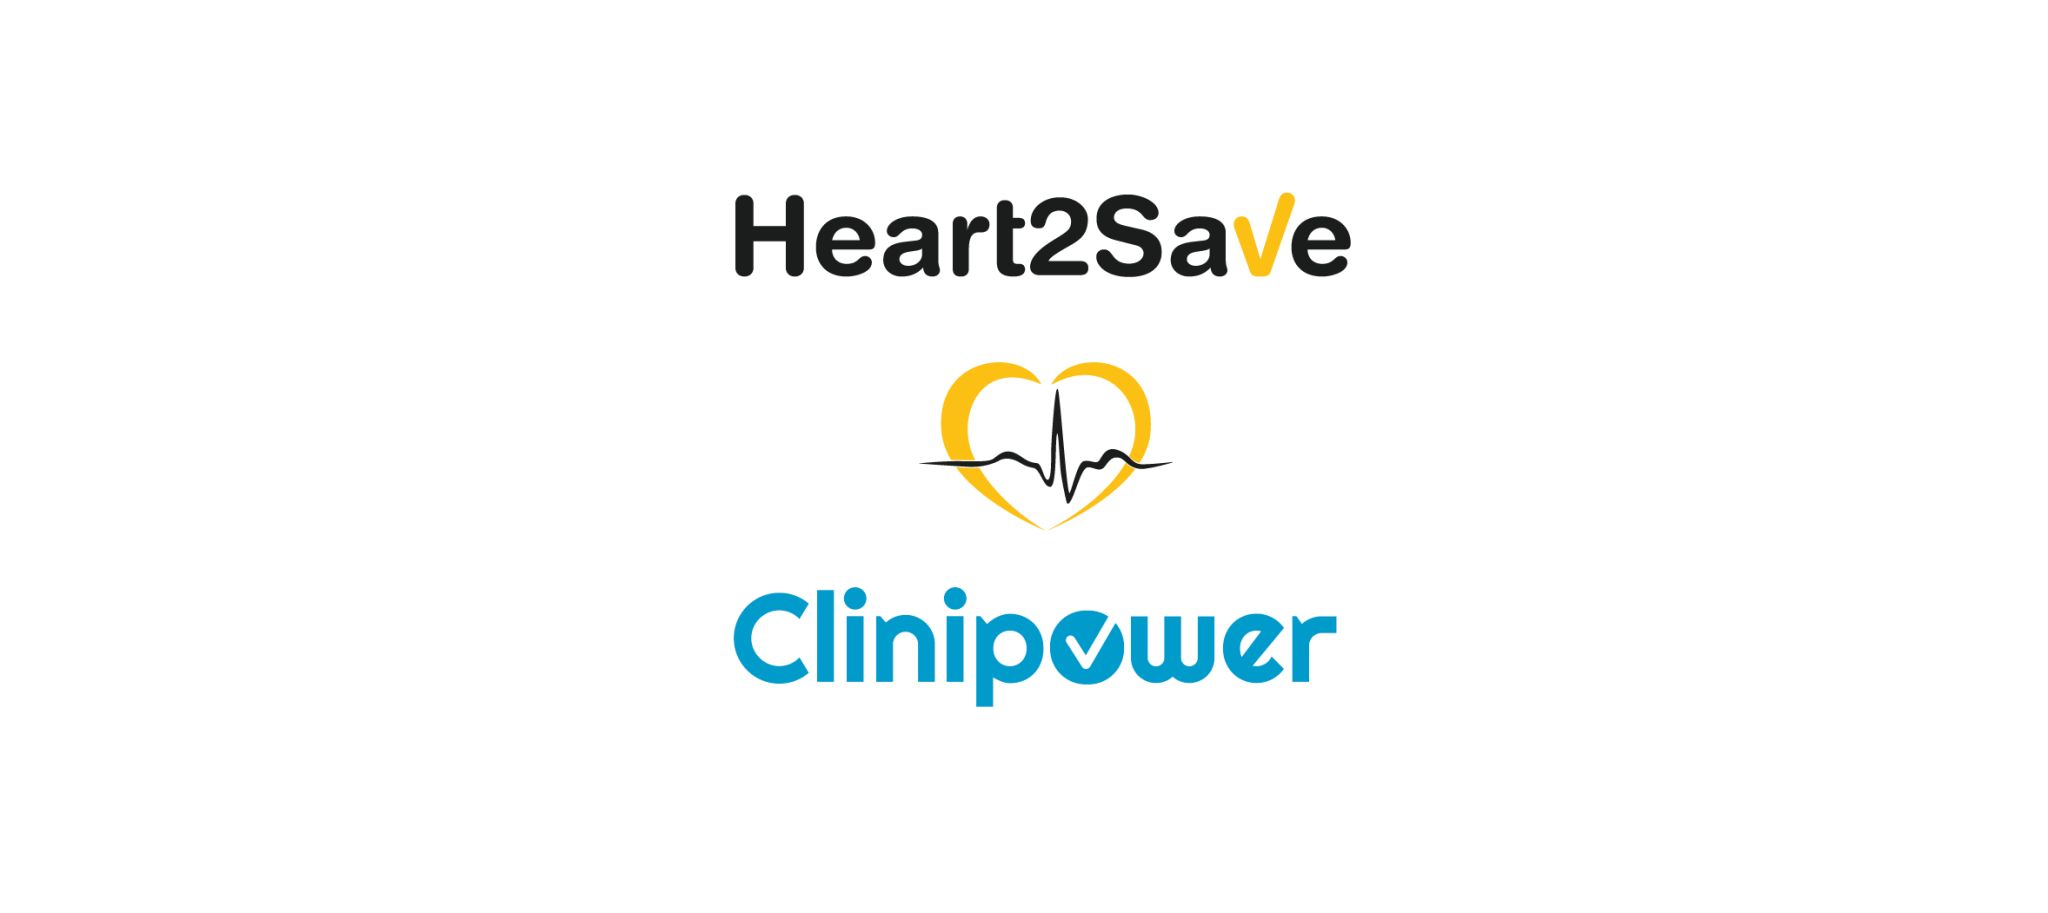 Clinipower Finland Ltd and Heart2Save deepen their shared expertise